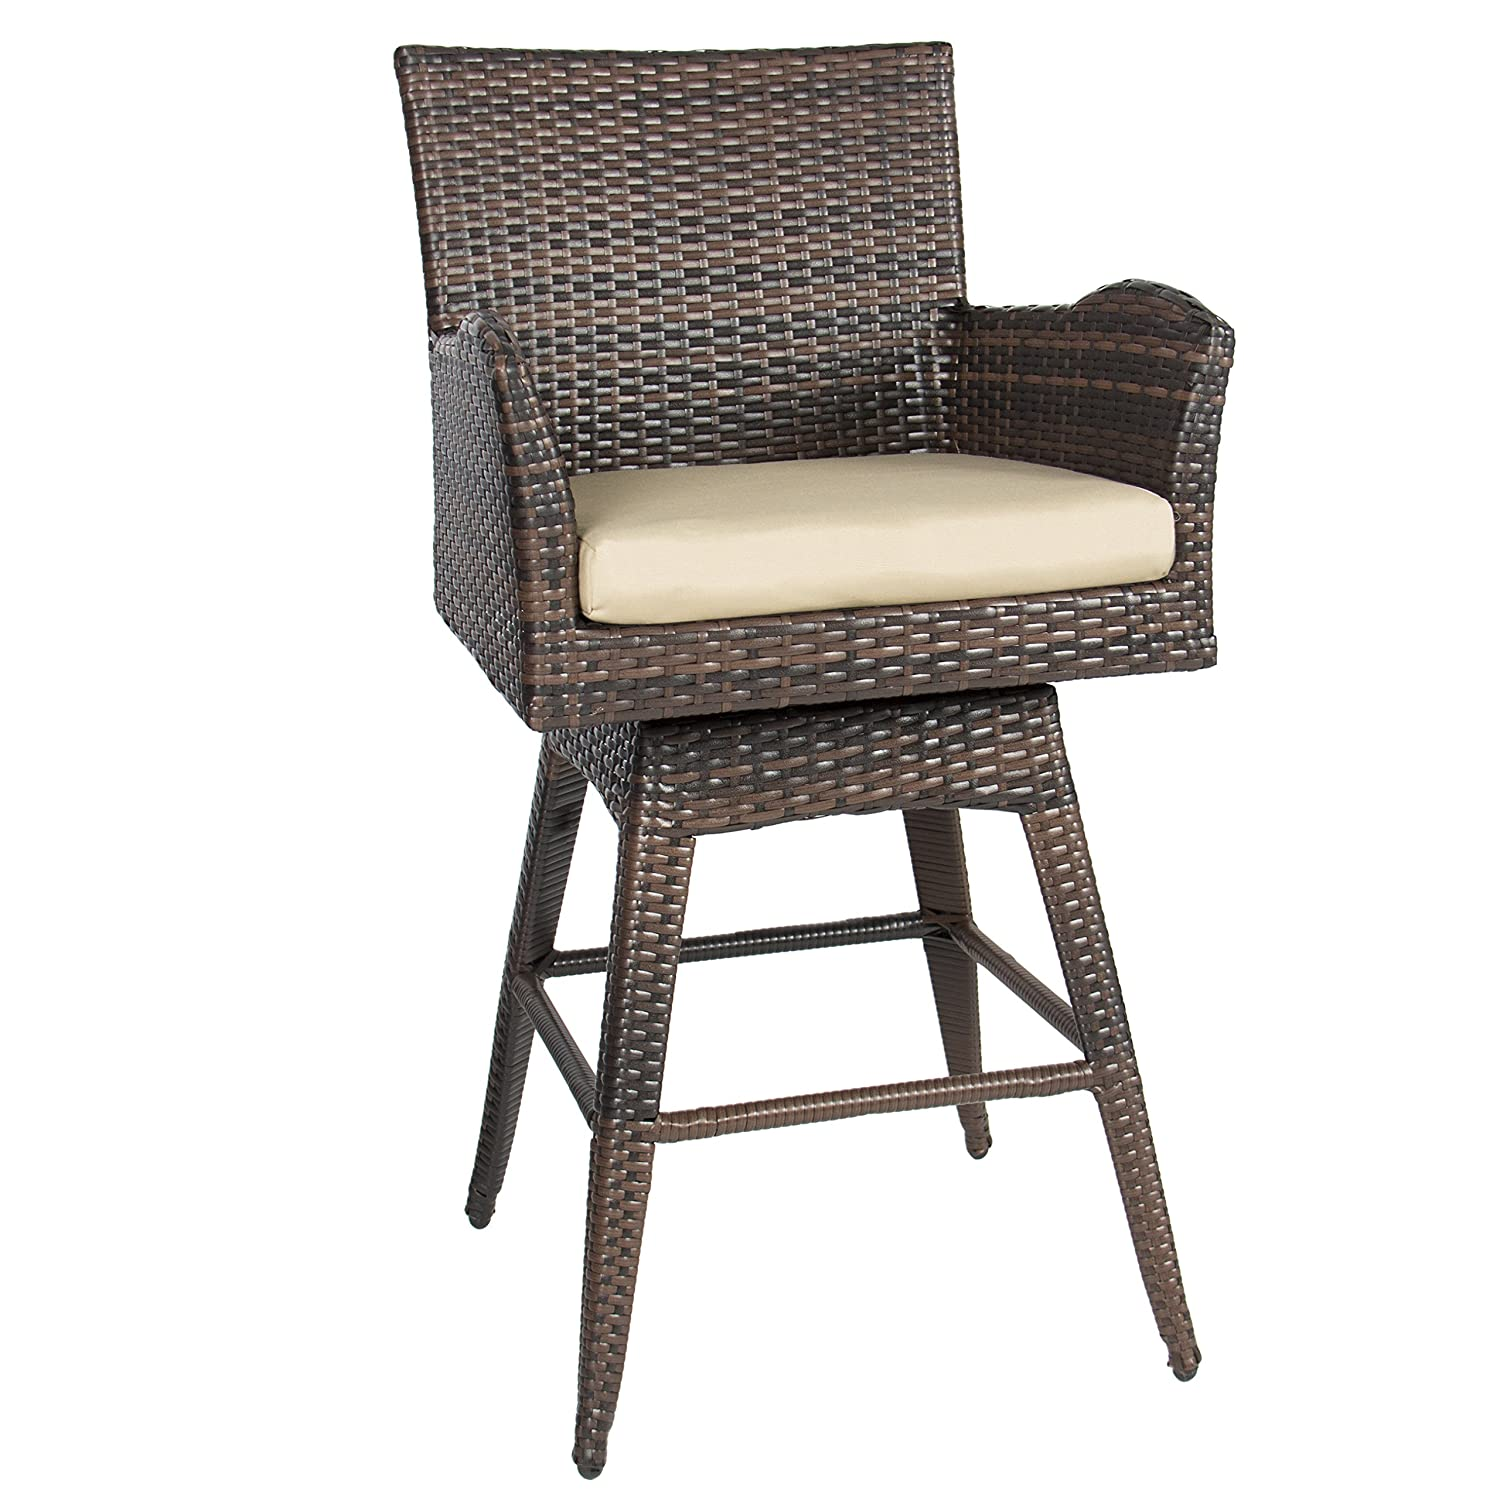 Amazon.com: Best Choice Products Outdoor Patio Furniture All Weather Brown  Wicker Swivel Bar Stool With Cushion: Garden U0026 Outdoor Part 83